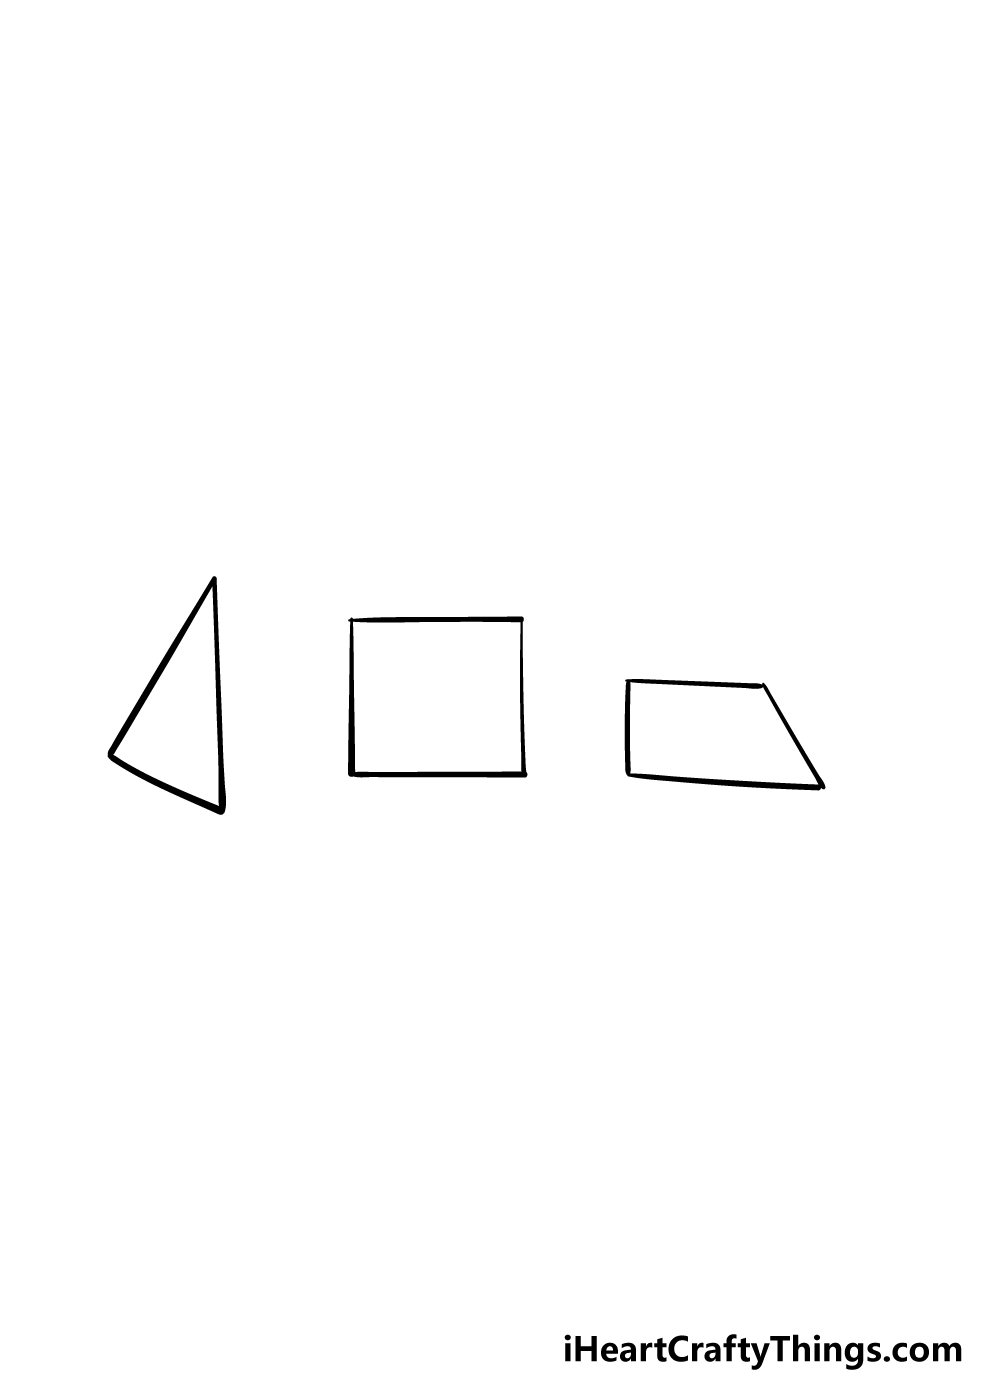 3D shapes drawing step 3